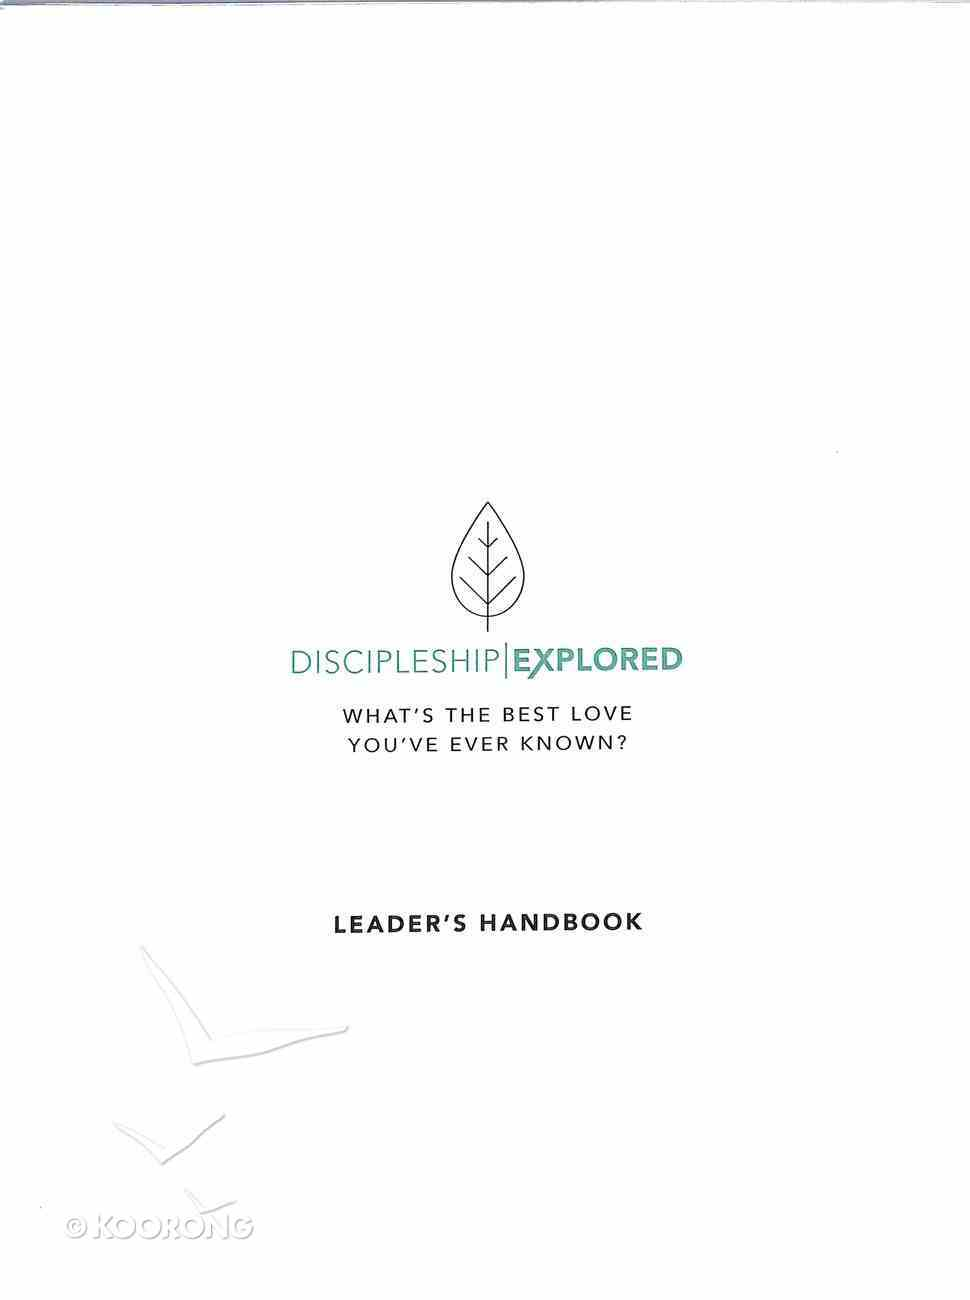 Discipleship Explored: What's the Best Love You've Ever Known? (Leader's Handbook) Paperback